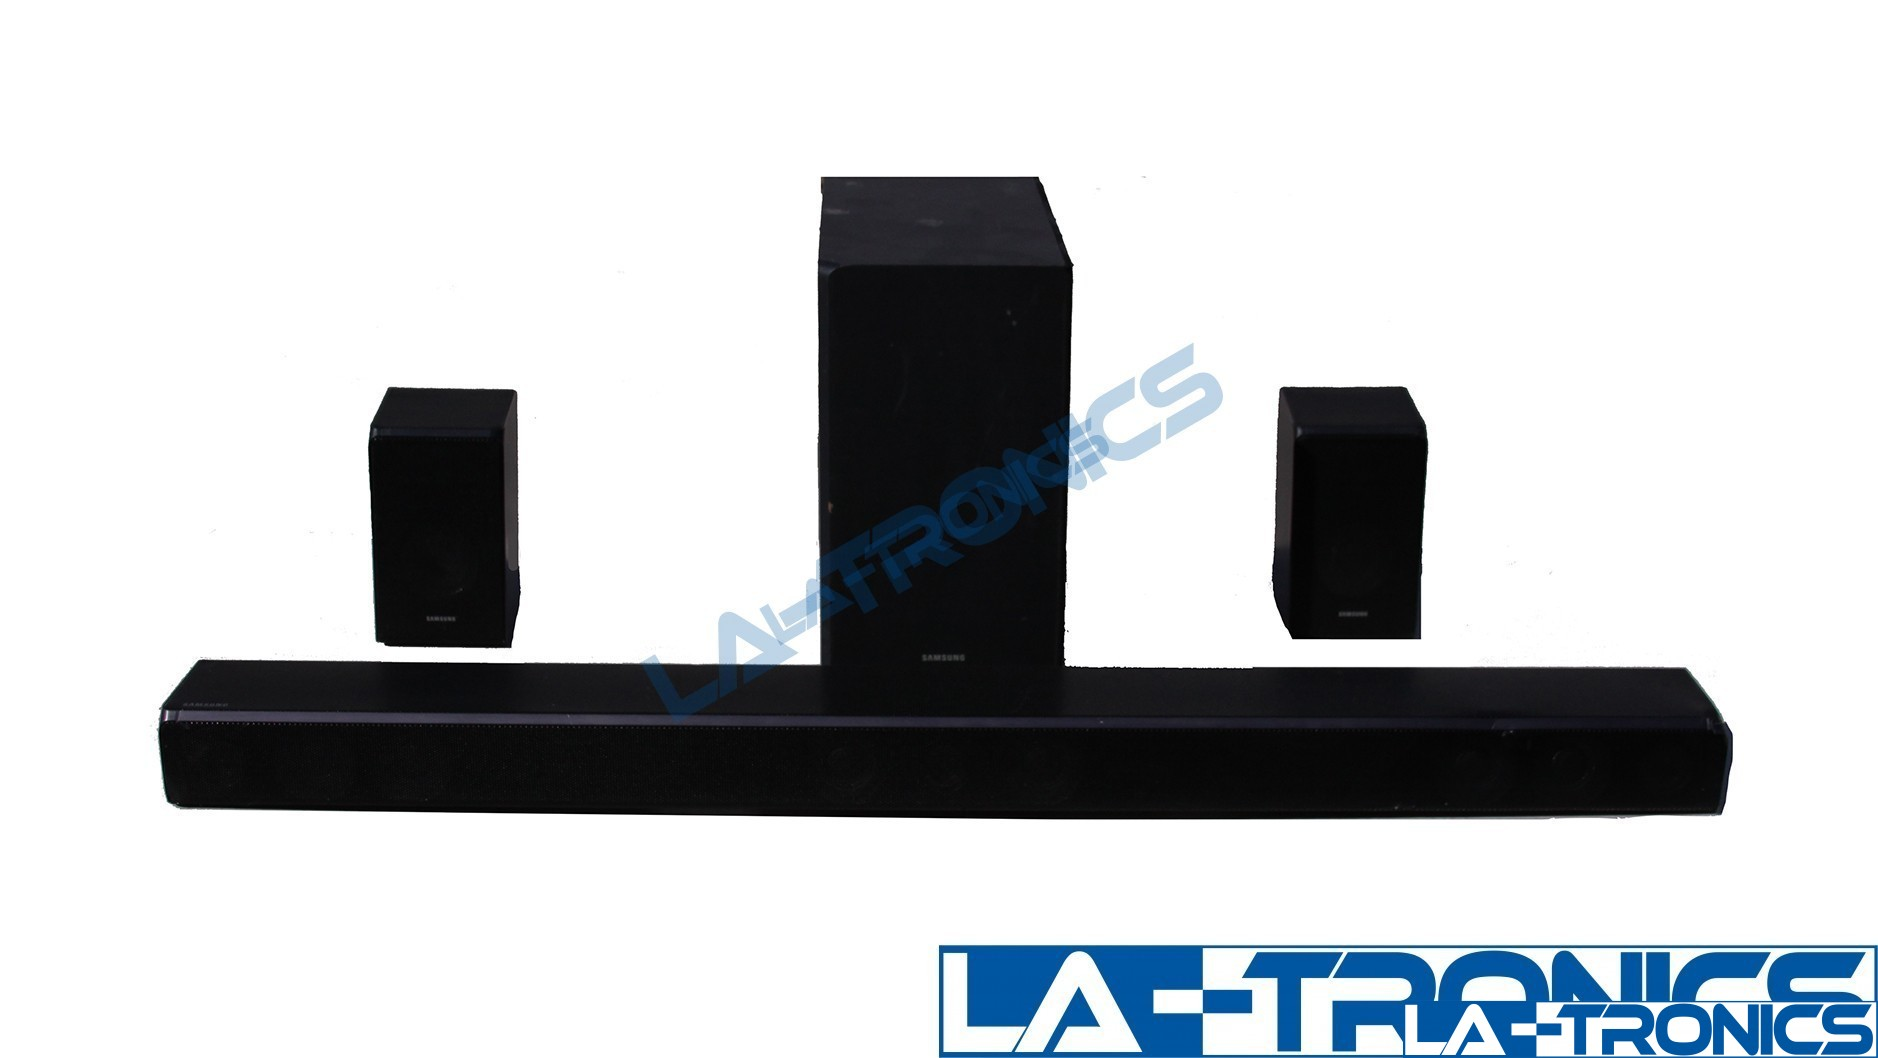 Samsung Soundbar with Dolby Atmos Home Theater w/ Subwoofer - HW-K950